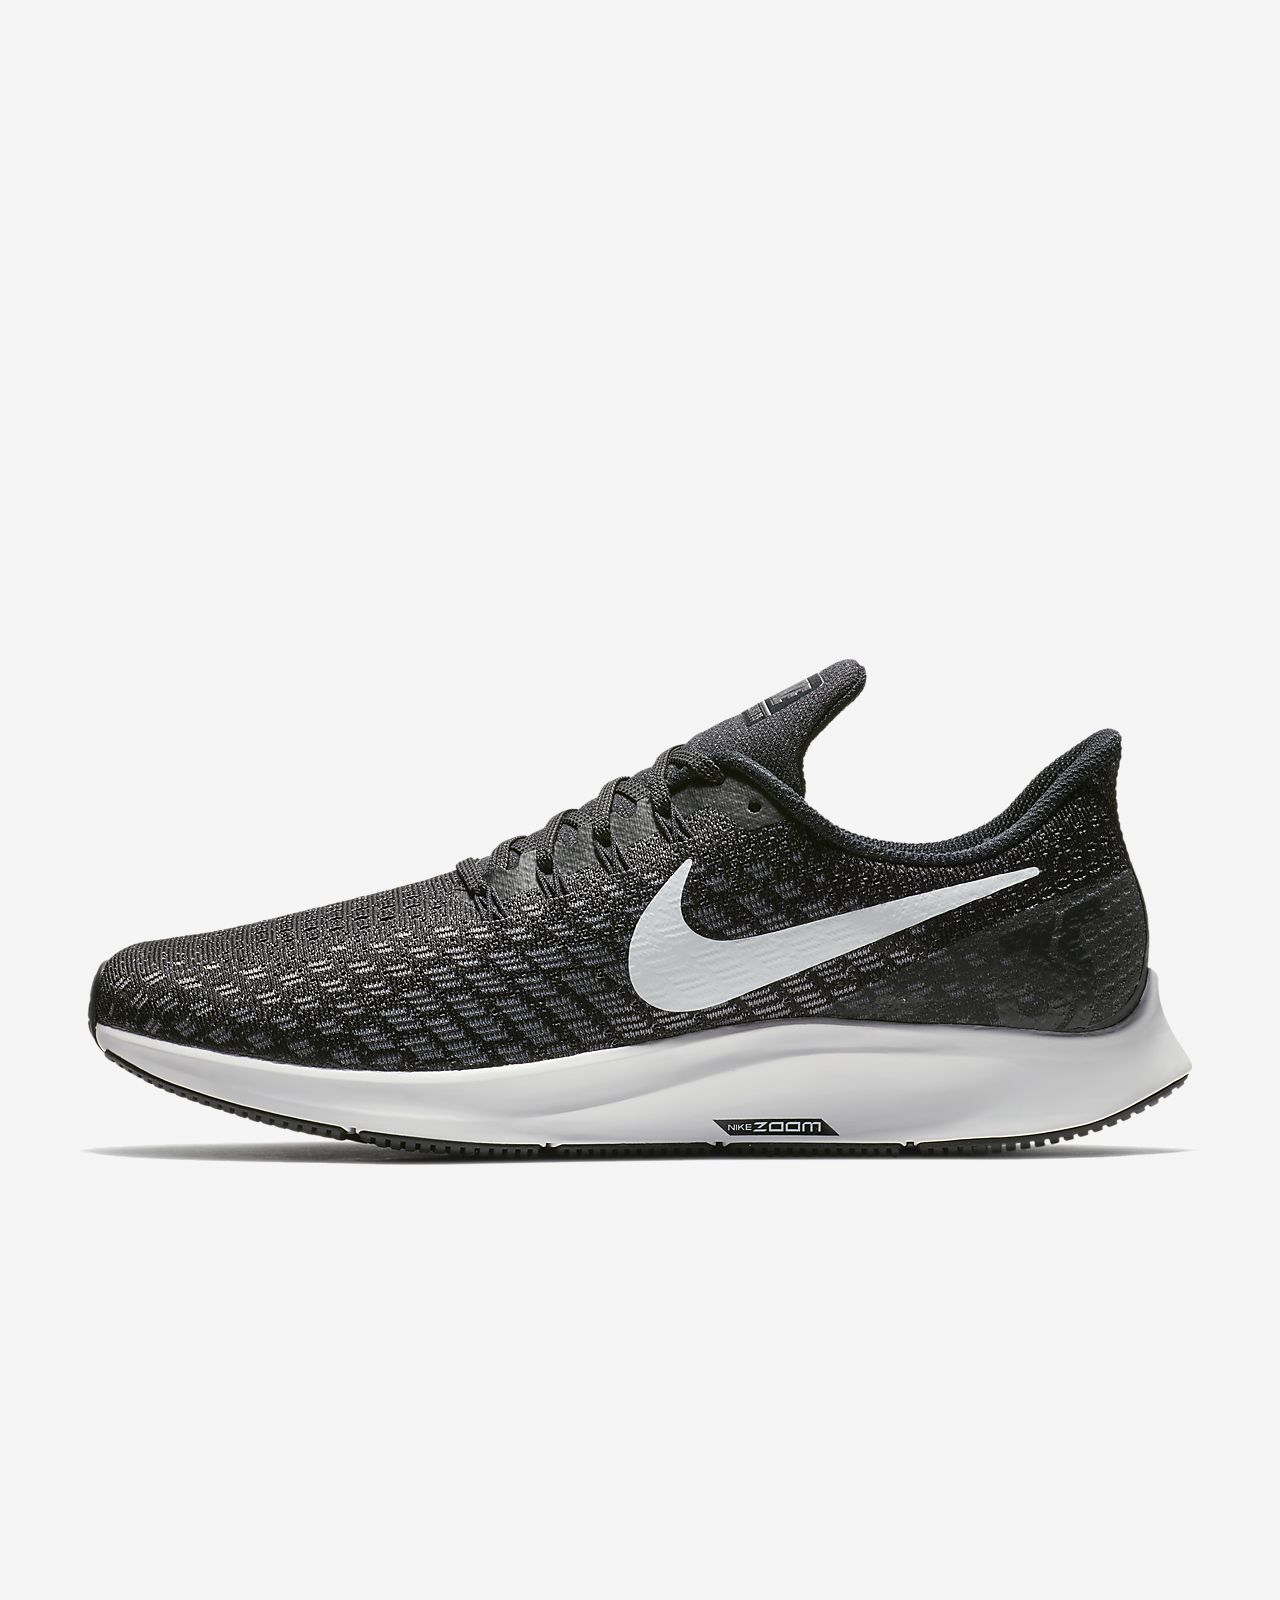 4c1dc669f7a Nike Air Zoom Pegasus 35 Men s Running Shoe. Nike.com VN